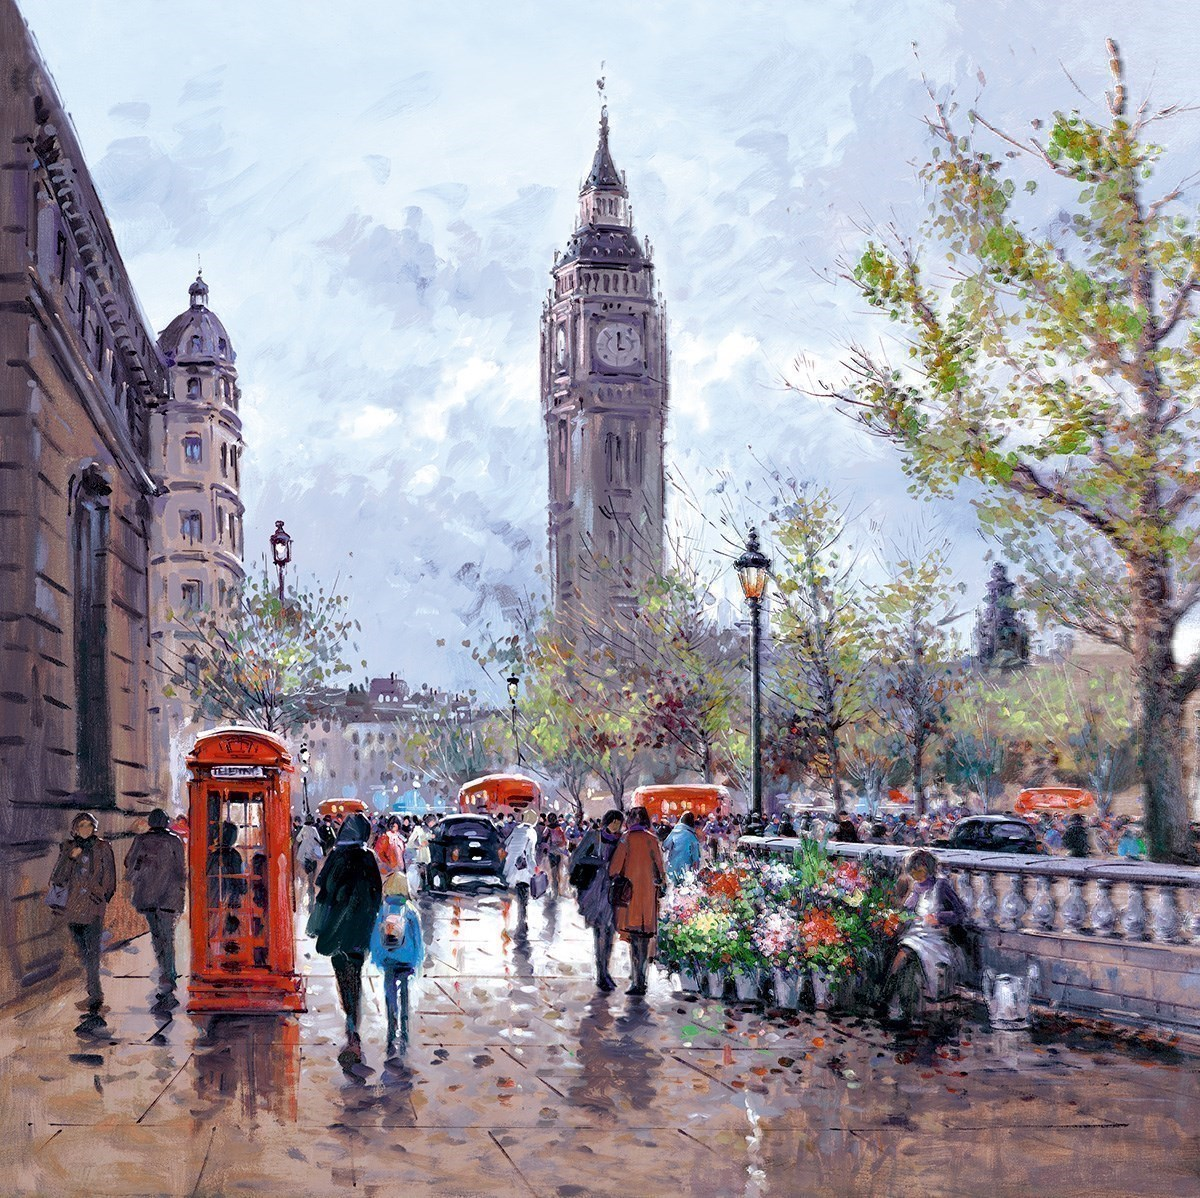 Memories Of London by Henderson Cisz - Hand Finished Limited Edition on Canvas sized 30x30 inches. Available from Whitewall Galleries